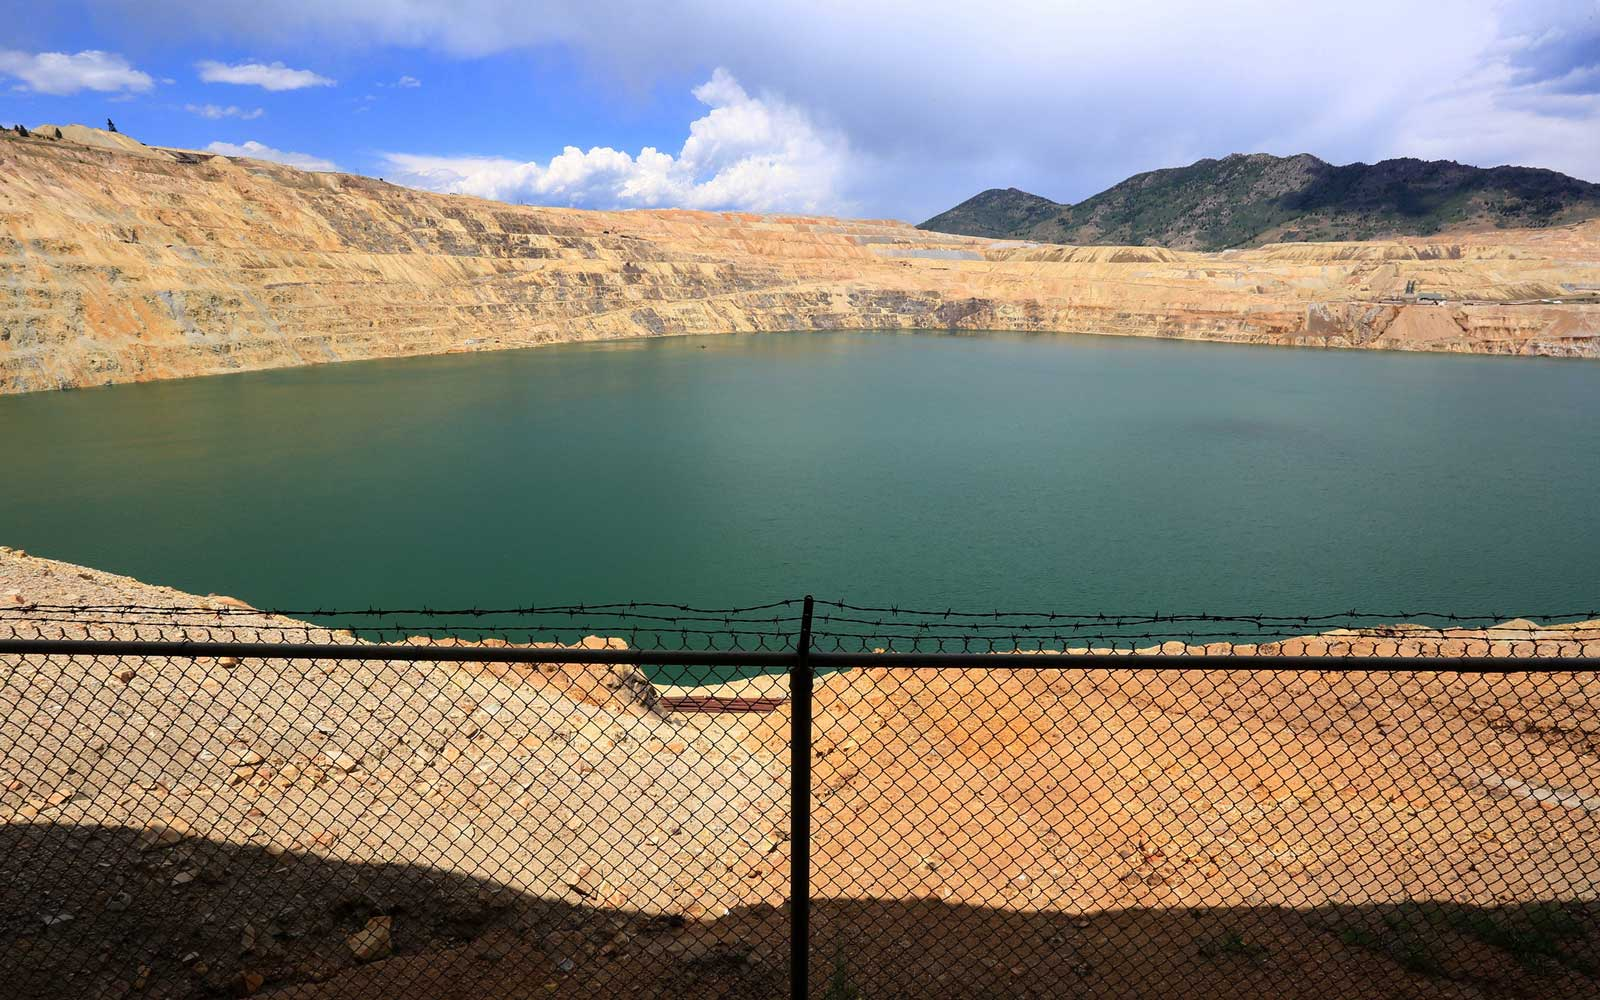 Berkeley Pit Superfund Site Forms Largest Body Of Contaminated Water In U.S.